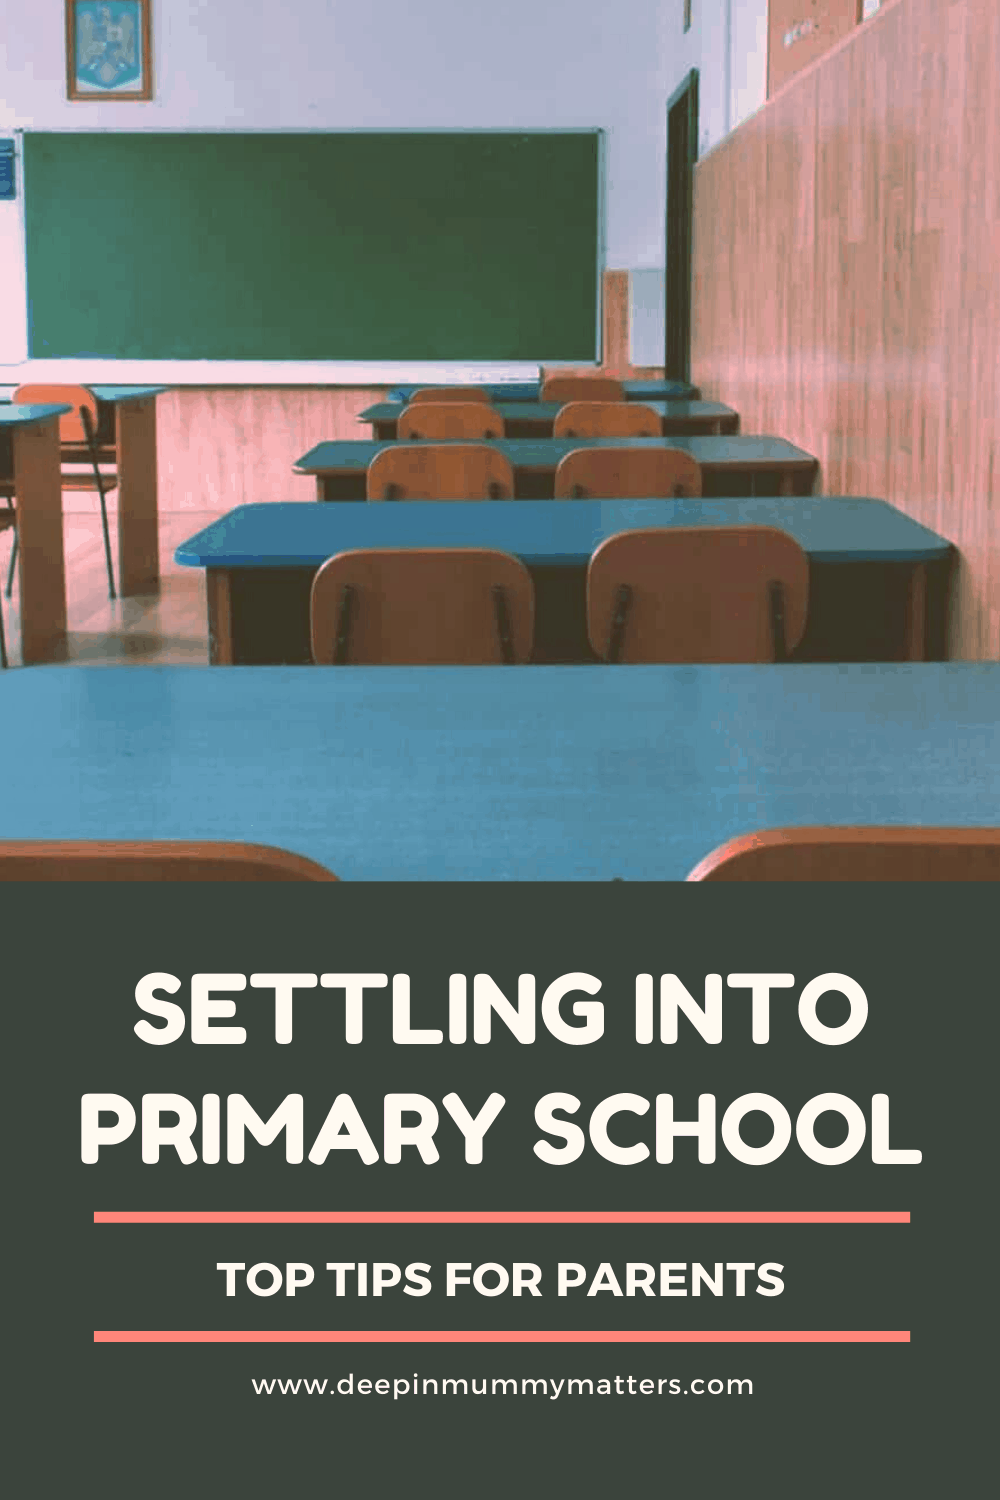 Settling into Primary School